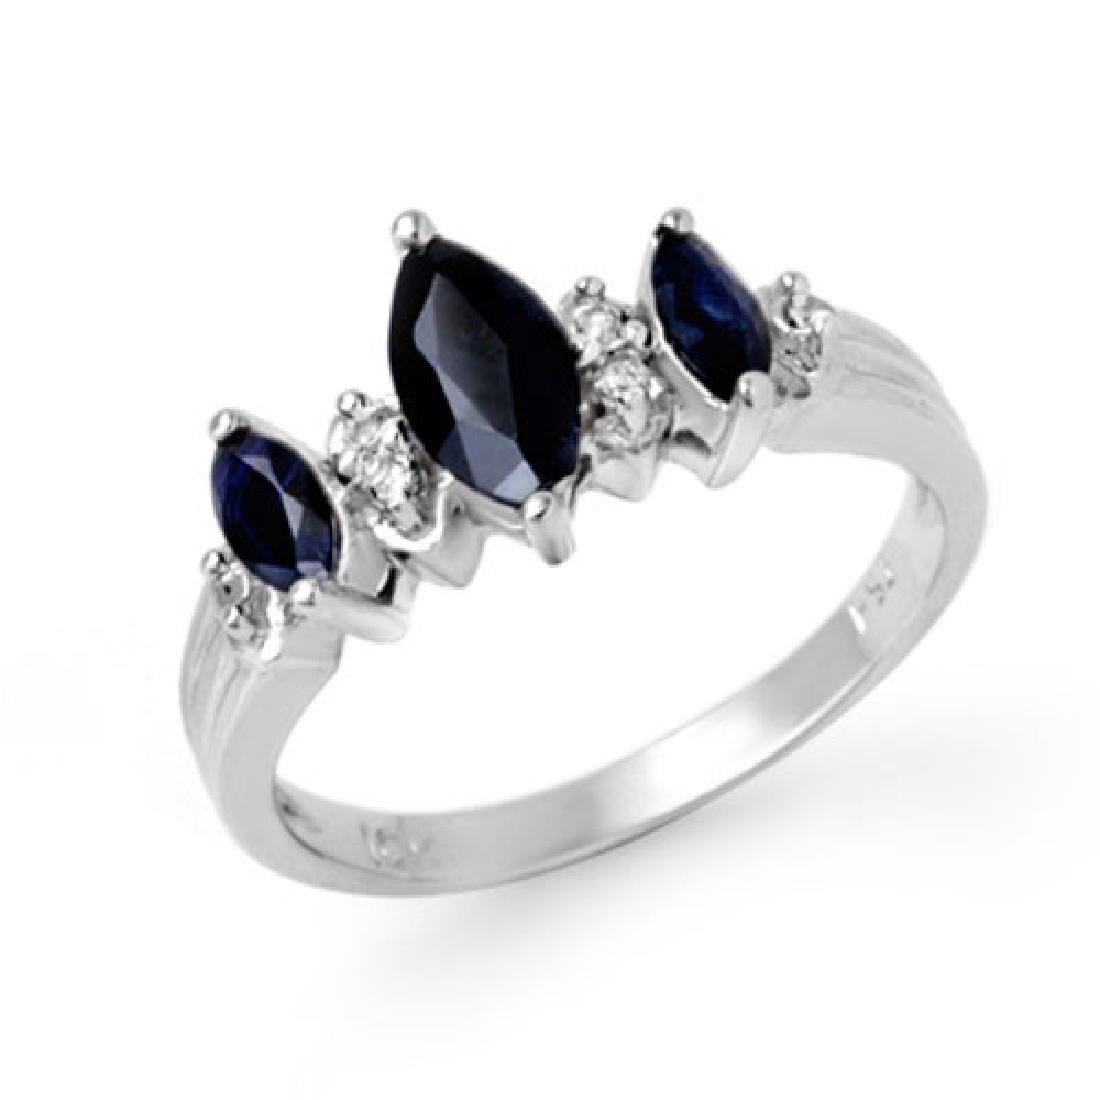 1.0 CTW Blue Sapphire & Diamond Ring 10K White Gold